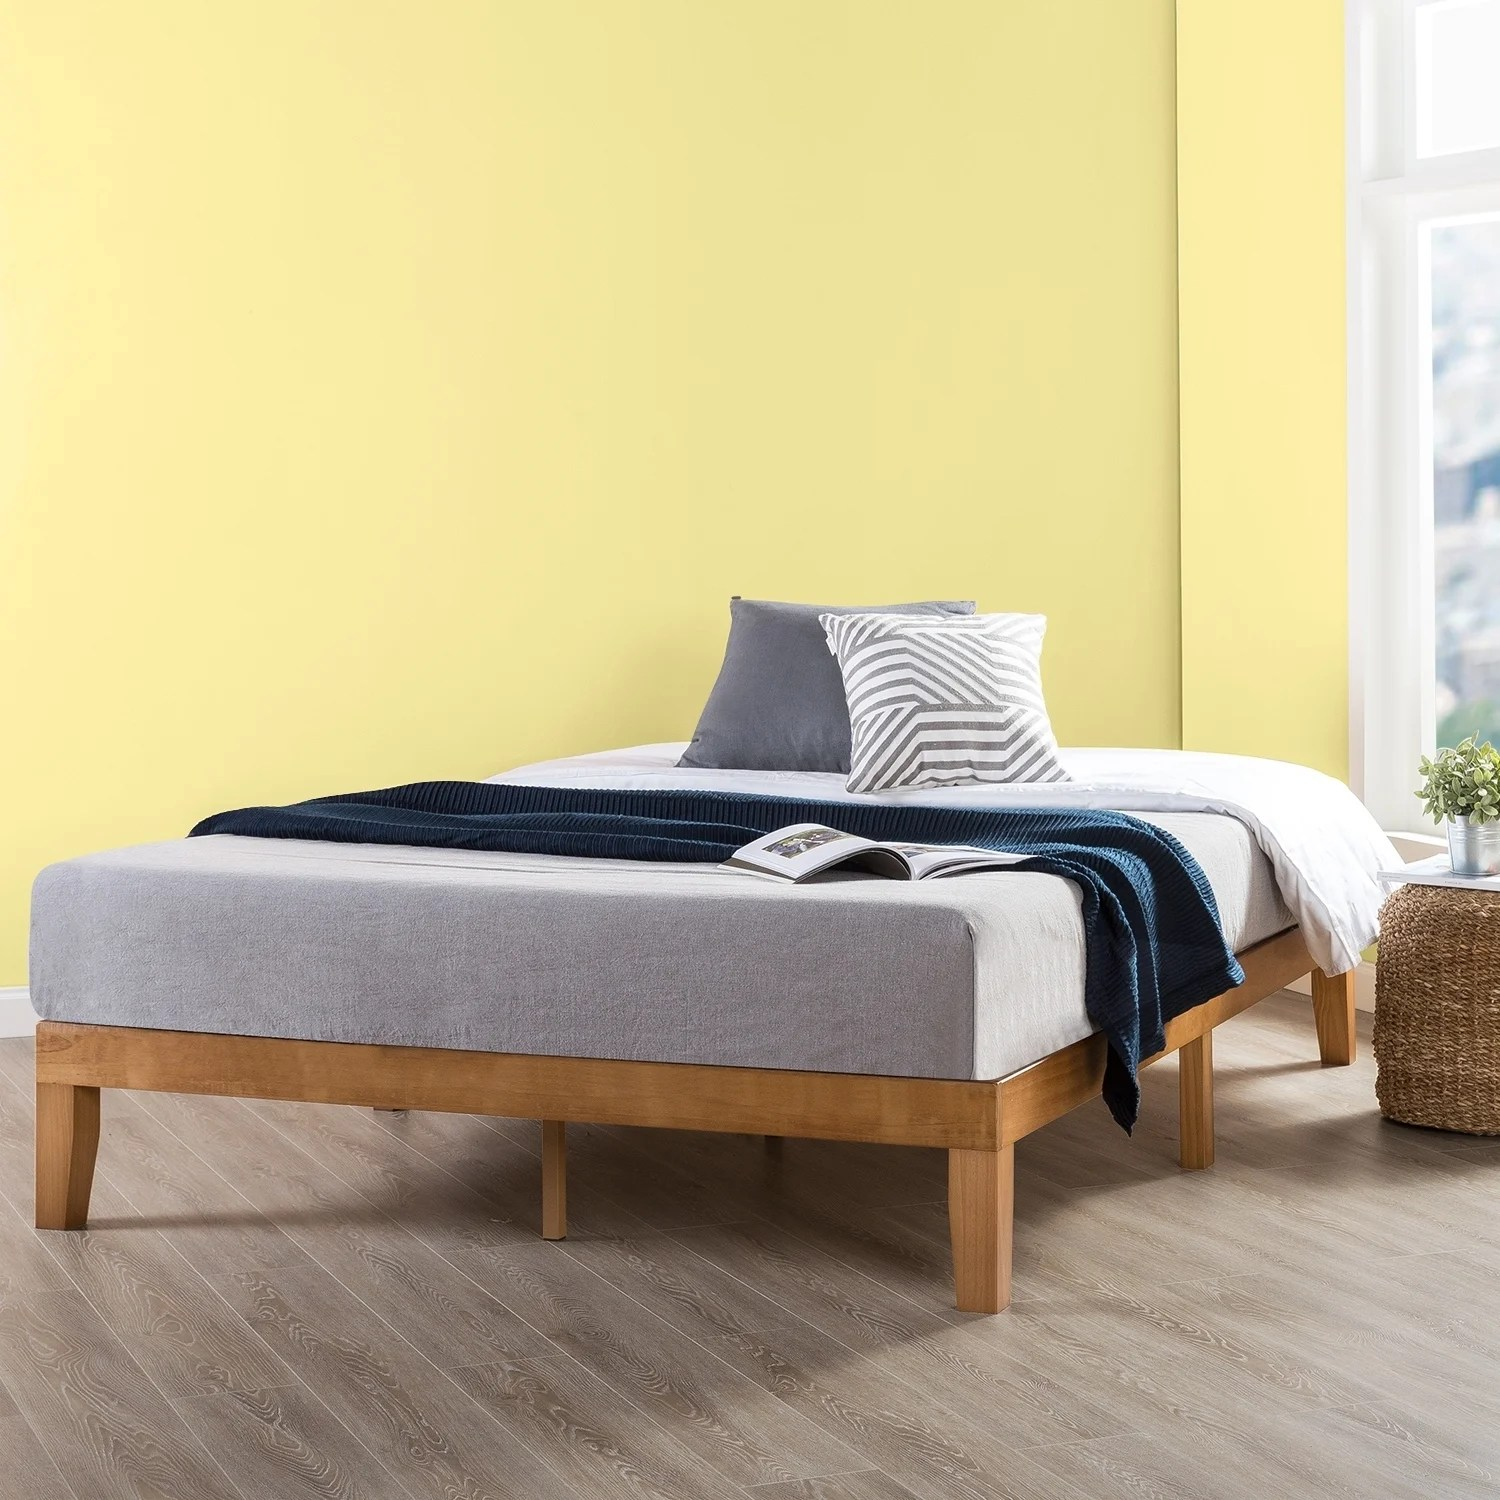 Full Size 12 Inch Classic Solid Wood Platform Bed Frame Natural Crown Comfort On Sale Overstock 22378120